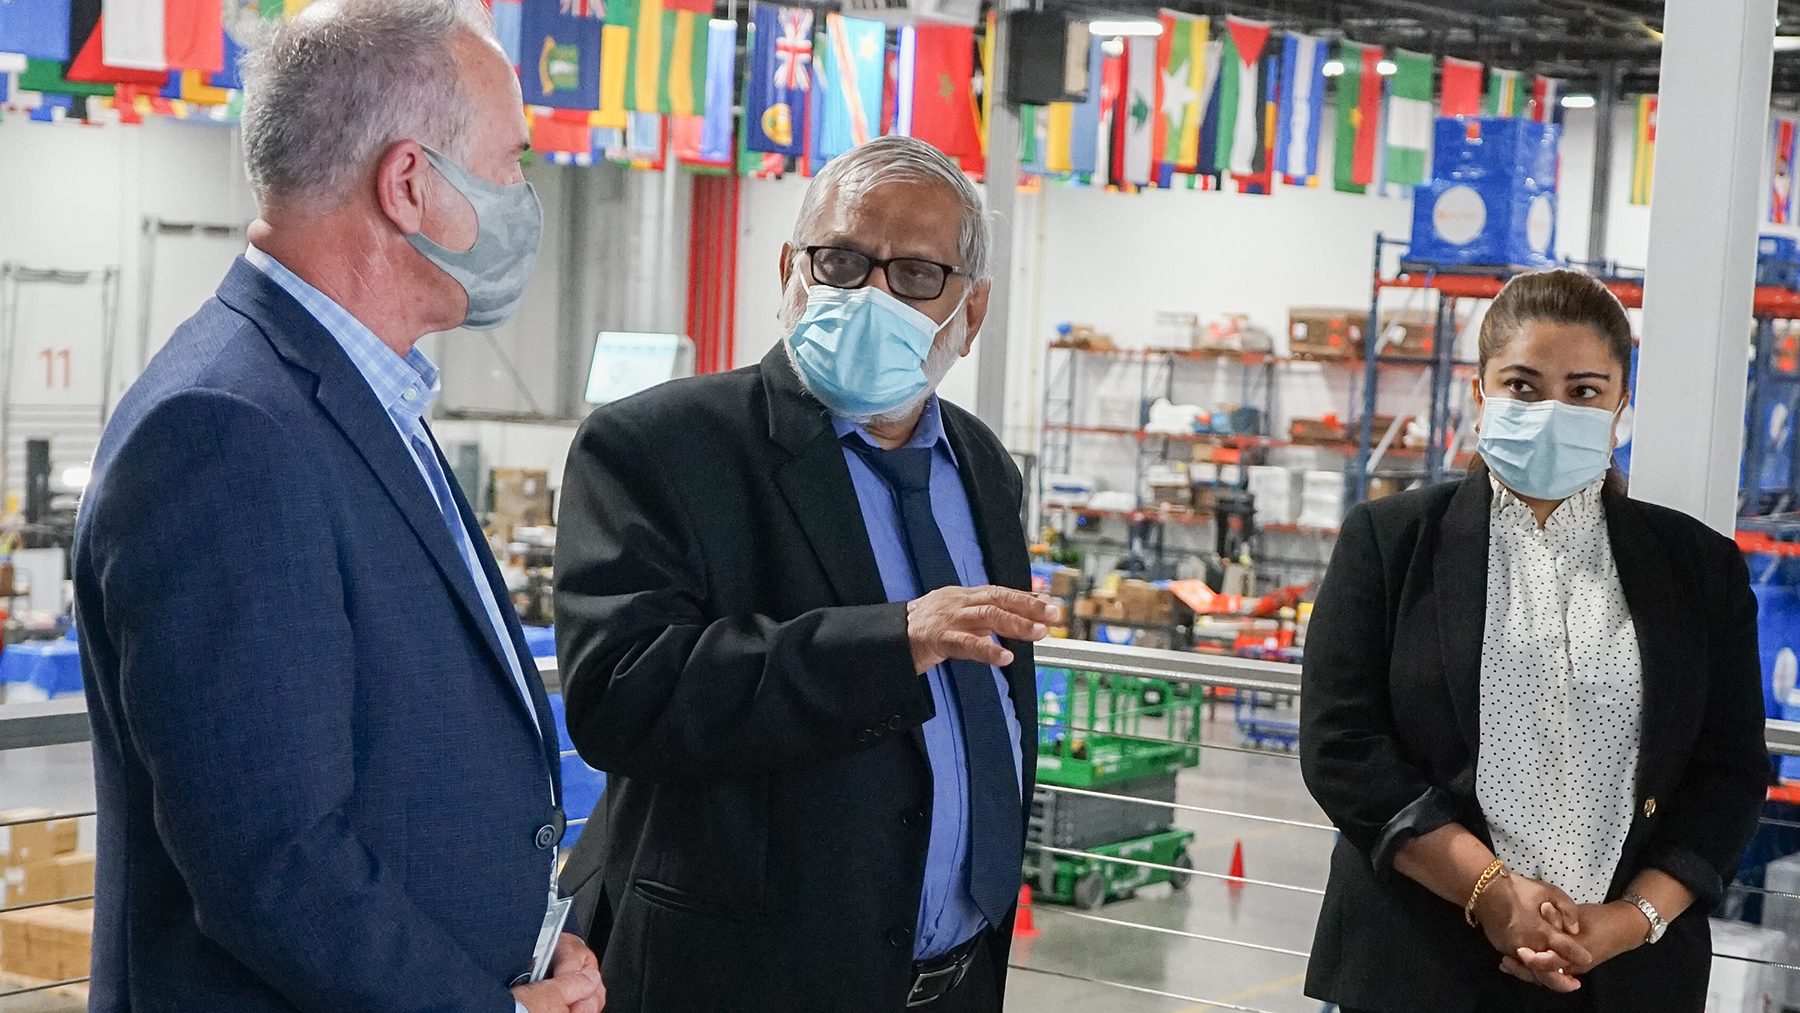 Honorable Dr. Lalith Priyalal Chandradasa, Consul General of Sri Lanka, (center) speaks with Direct Relief CEO Thomas Tighe and Aruni Boteju during a visit to Direct Relief's Santa Barbara headquarters on July 19, 2021. (Maeve O'Connor/Direct Relief)